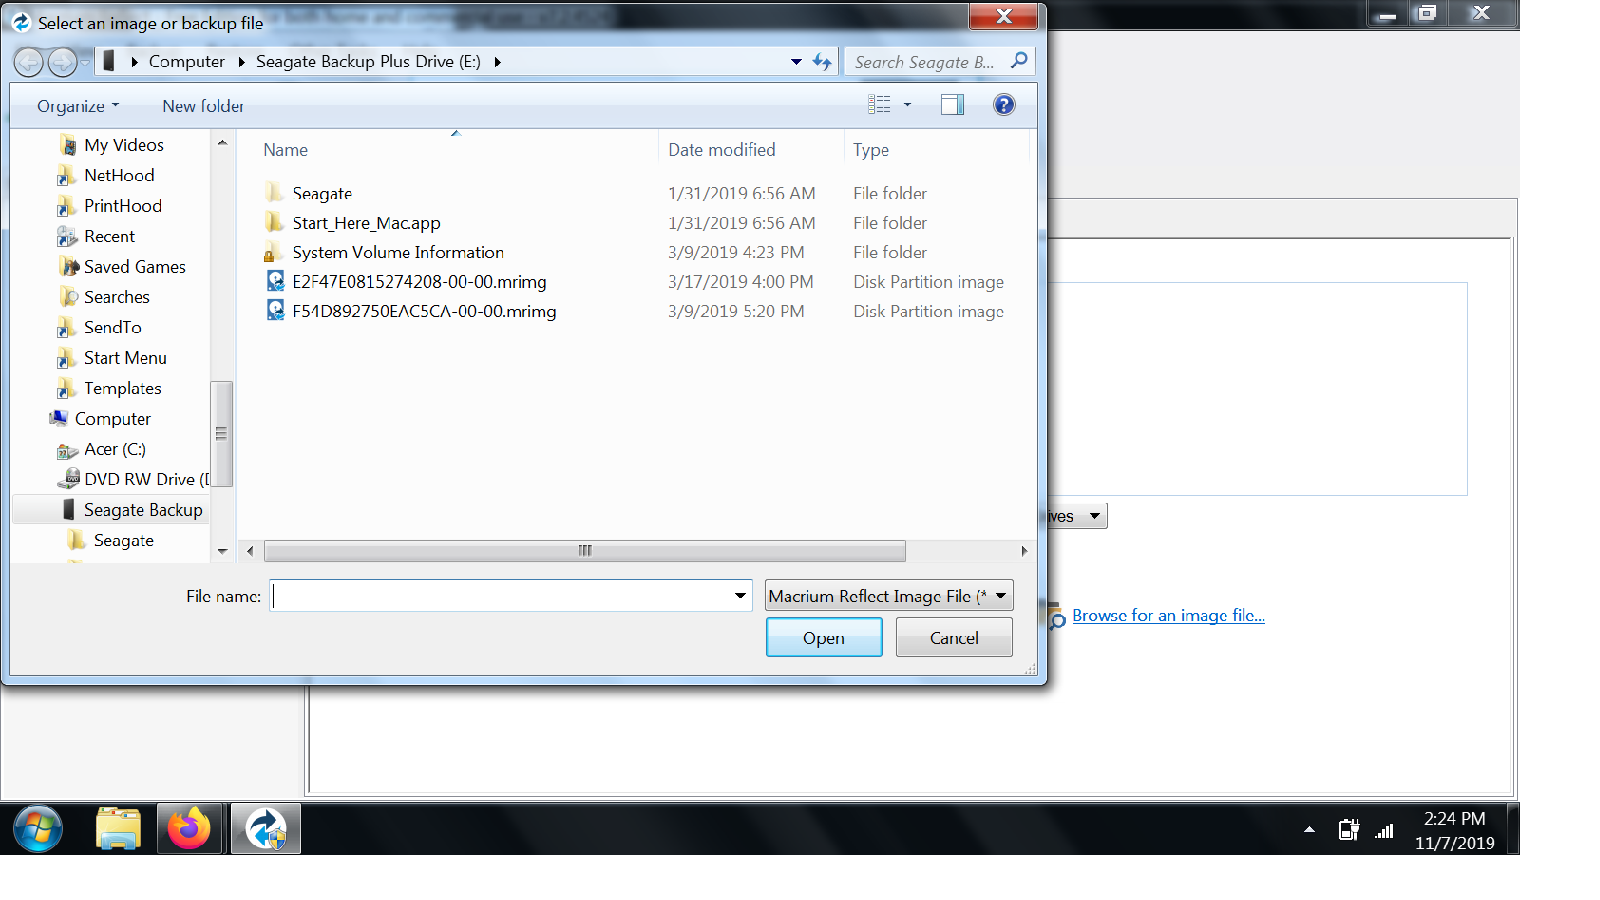 Browswe-for-image-or-backup-file-to-restore-1